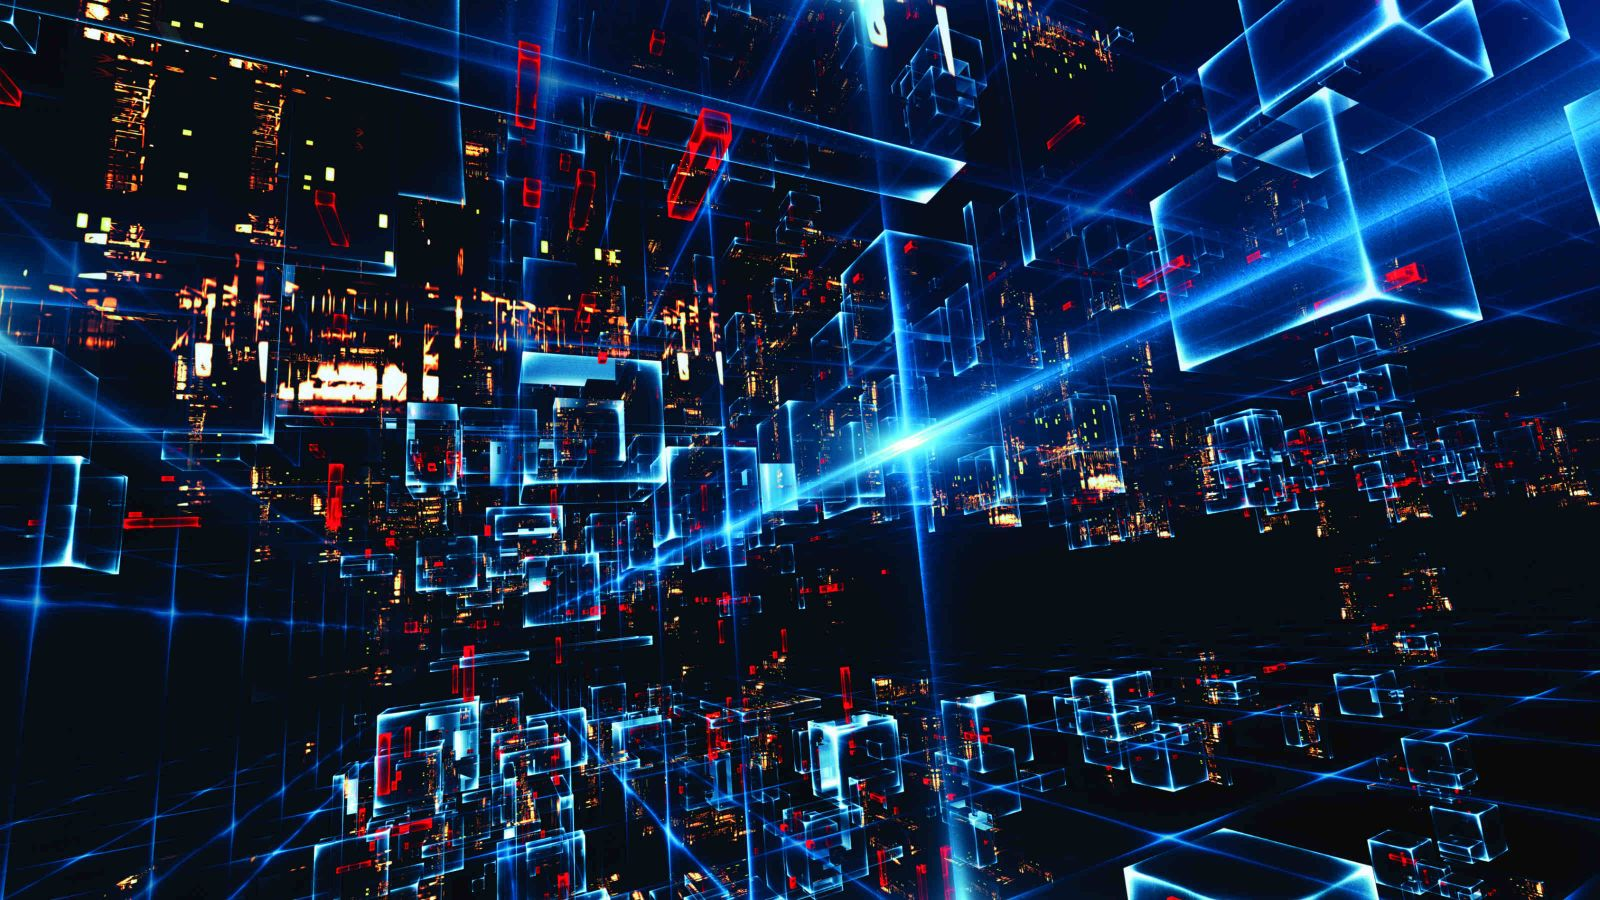 Abstract image of square cubes moving a long lines of light in a 3 dimensional black digital dimension.